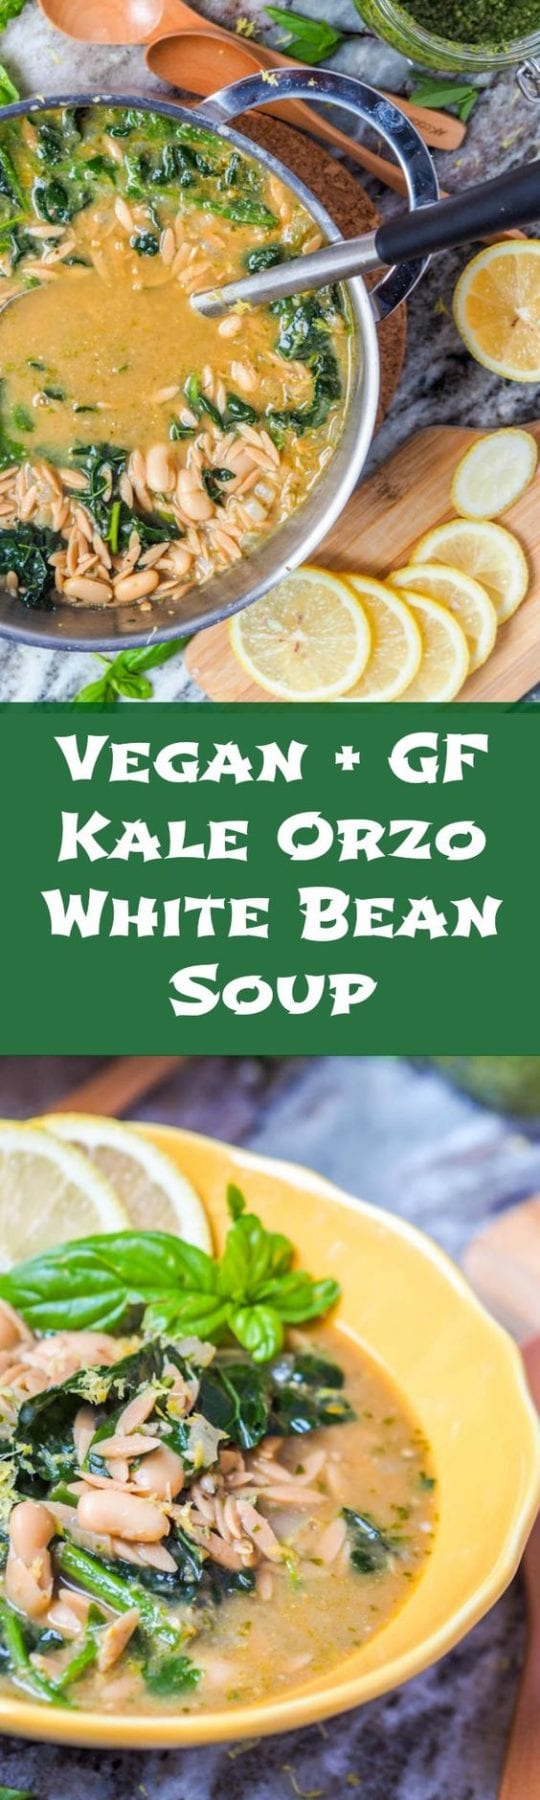 This eight ingredient vegan orzo soup with kale, white bean and pesto comes together in 30 minutes and is hearty enough for a full meal. Perfect for cooler fall nights. Gluten Free. #soup #vegan #healthy